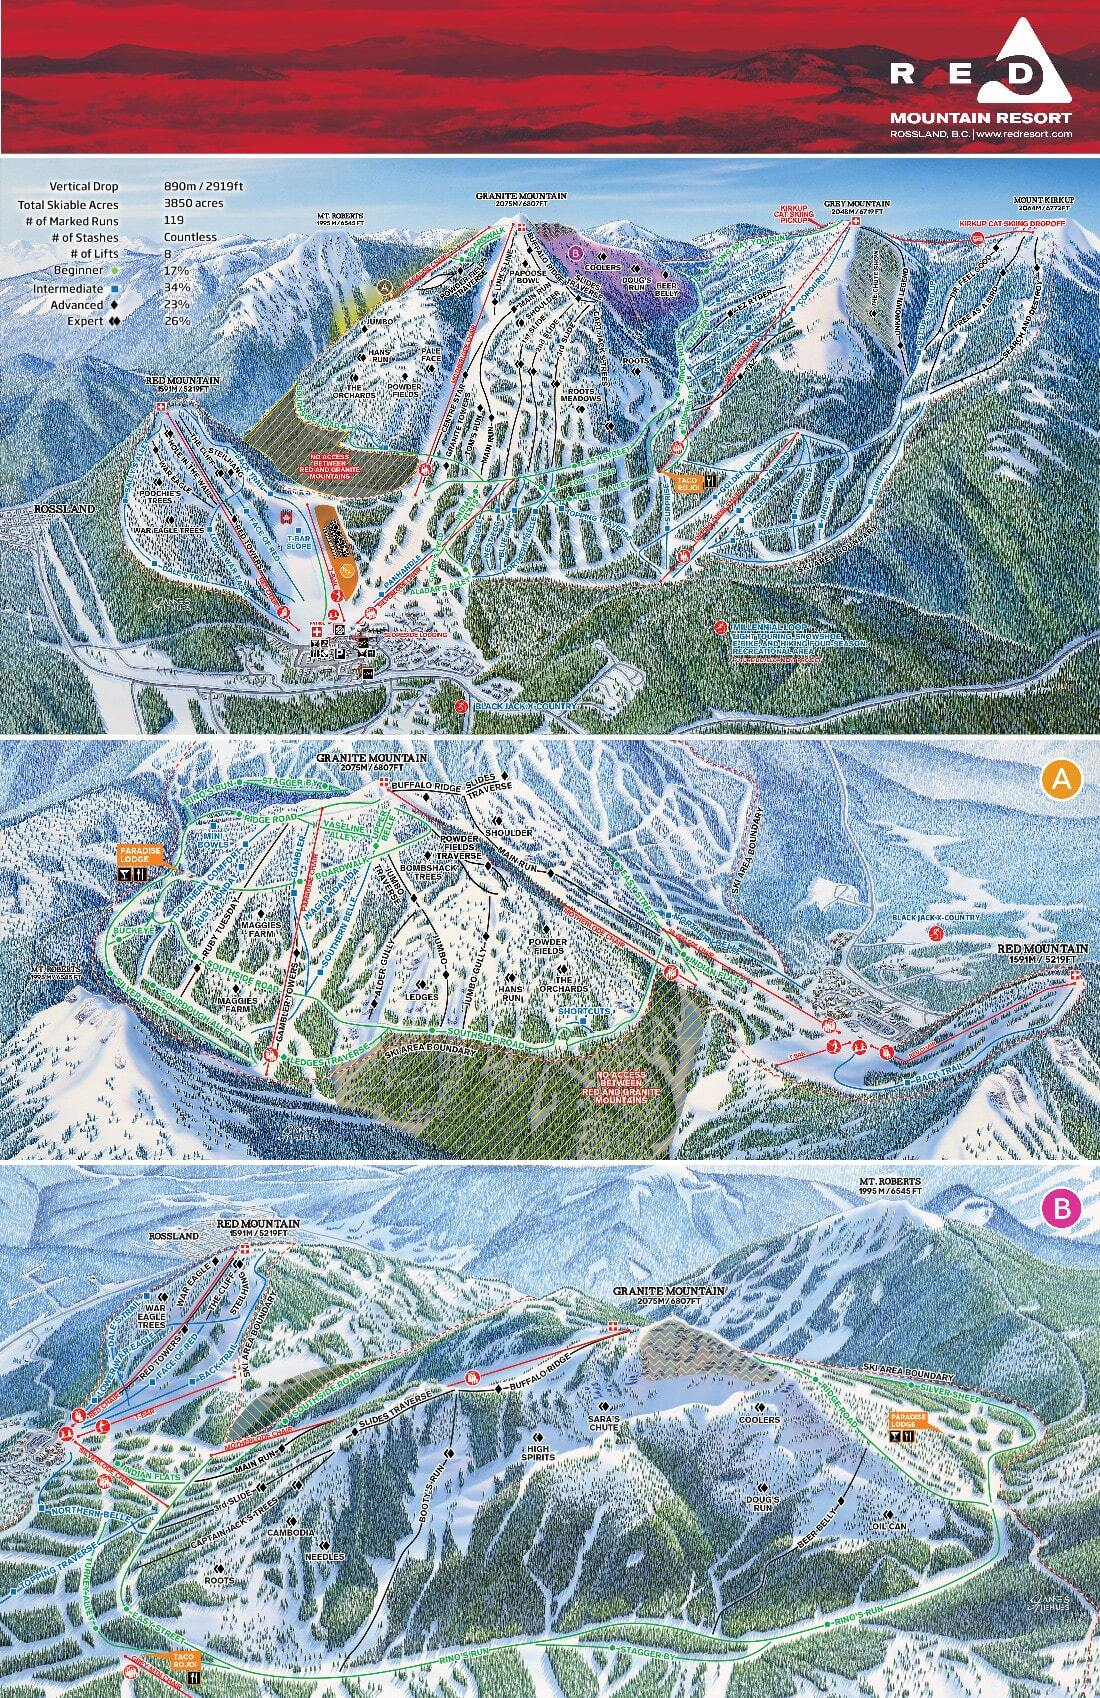 espresso dining chair hanging cape town red mountain resort ski guide, location map & holiday accommodation